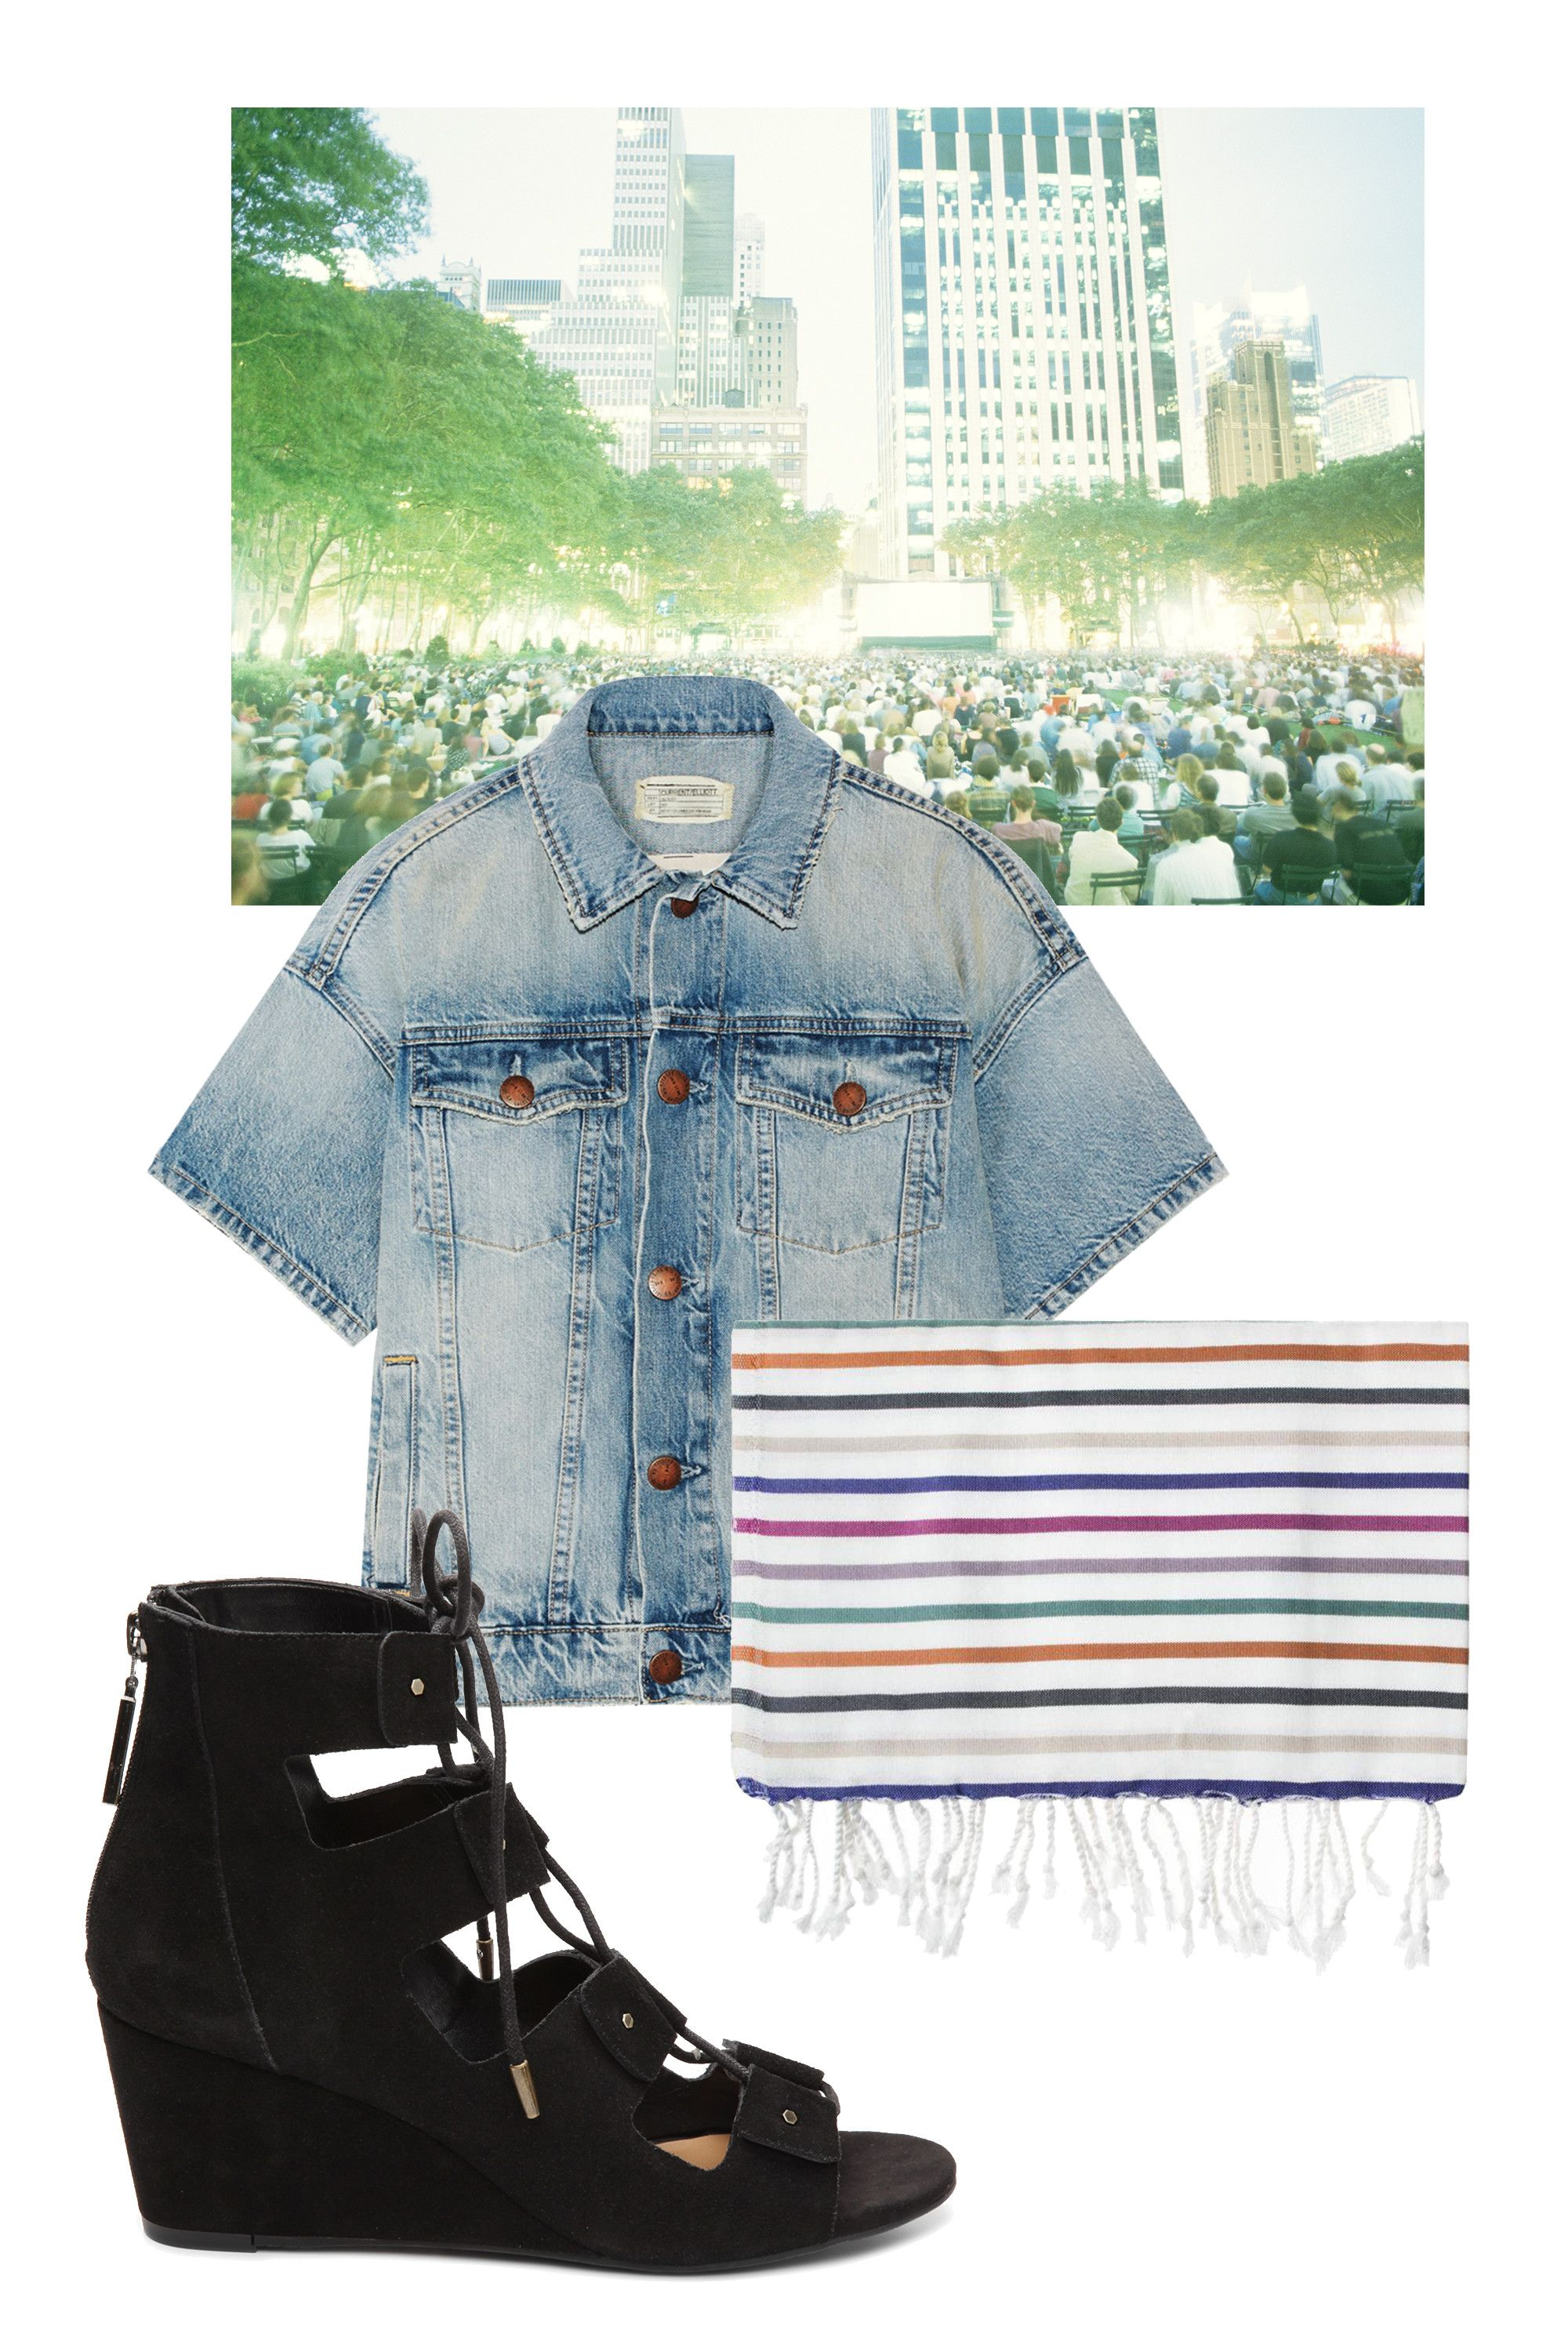 "<p>In lieu of the latest blockbuster, skip the theater and watch an old  classic outdoors. Pack bug spray, beer, a blanket and arrive early—the best spots on the grass go fast! </p><p><br> </p><p><em>Dolce Vita Lucy Wedge, $79.95, <a href=""http://www.dsw.com/shoe/dolce+vita+lucy+wedge+sandal?prodId=355574&cm_mmc=display-_-Media-Hearst-Spring2016"" target=""_blank"">dsw.com</a>; Fuchsia Portofino Peshtemal Simple Life, $68, <a href=""http://domino.com/simple-life-fuchsia-portofino-peshtemal/50154037-049118"" target=""_blank"">domino.com</a>; Current/Elliott The Rolled Sleeve Trucker Denim Jacket, $340, <a href=""http://www.matchesfashion.com/us/products/1043467?country=USA&LGWCODE=1043467000002;104033;6167&visitor_id=v3_a7c4d8ba-1864-11e6-ac40-001636bdd5d5&gclid=Cj0KEQjw09C5BRDy972s6q2y4egBEiQA5_guv4RP-NLqfW3IqiN5ahnlINreBS8aoq7j9Kj8yPW0ZwQaAi-78P8HAQ&qxjkl=tsid%3A75618%7Ccid%3A275295246%7Cagid%3A17618770566%7Ctid%3Apla-85326529617%7Ccrid%3A66843440646%7Cnw%3Ag%7Crnd%3A7886097451610025453%7Cdvc%3Ac%7Cadp%3A1o11"" target=""_blank"">matchesfashion.com</a><span class=""redactor-invisible-space""><a href=""https://www.net-a-porter.com/us/en/product/660077/Current_Elliott/the-rolled-sleeve-trucker-denim-jacket""></a></span></em></p>"